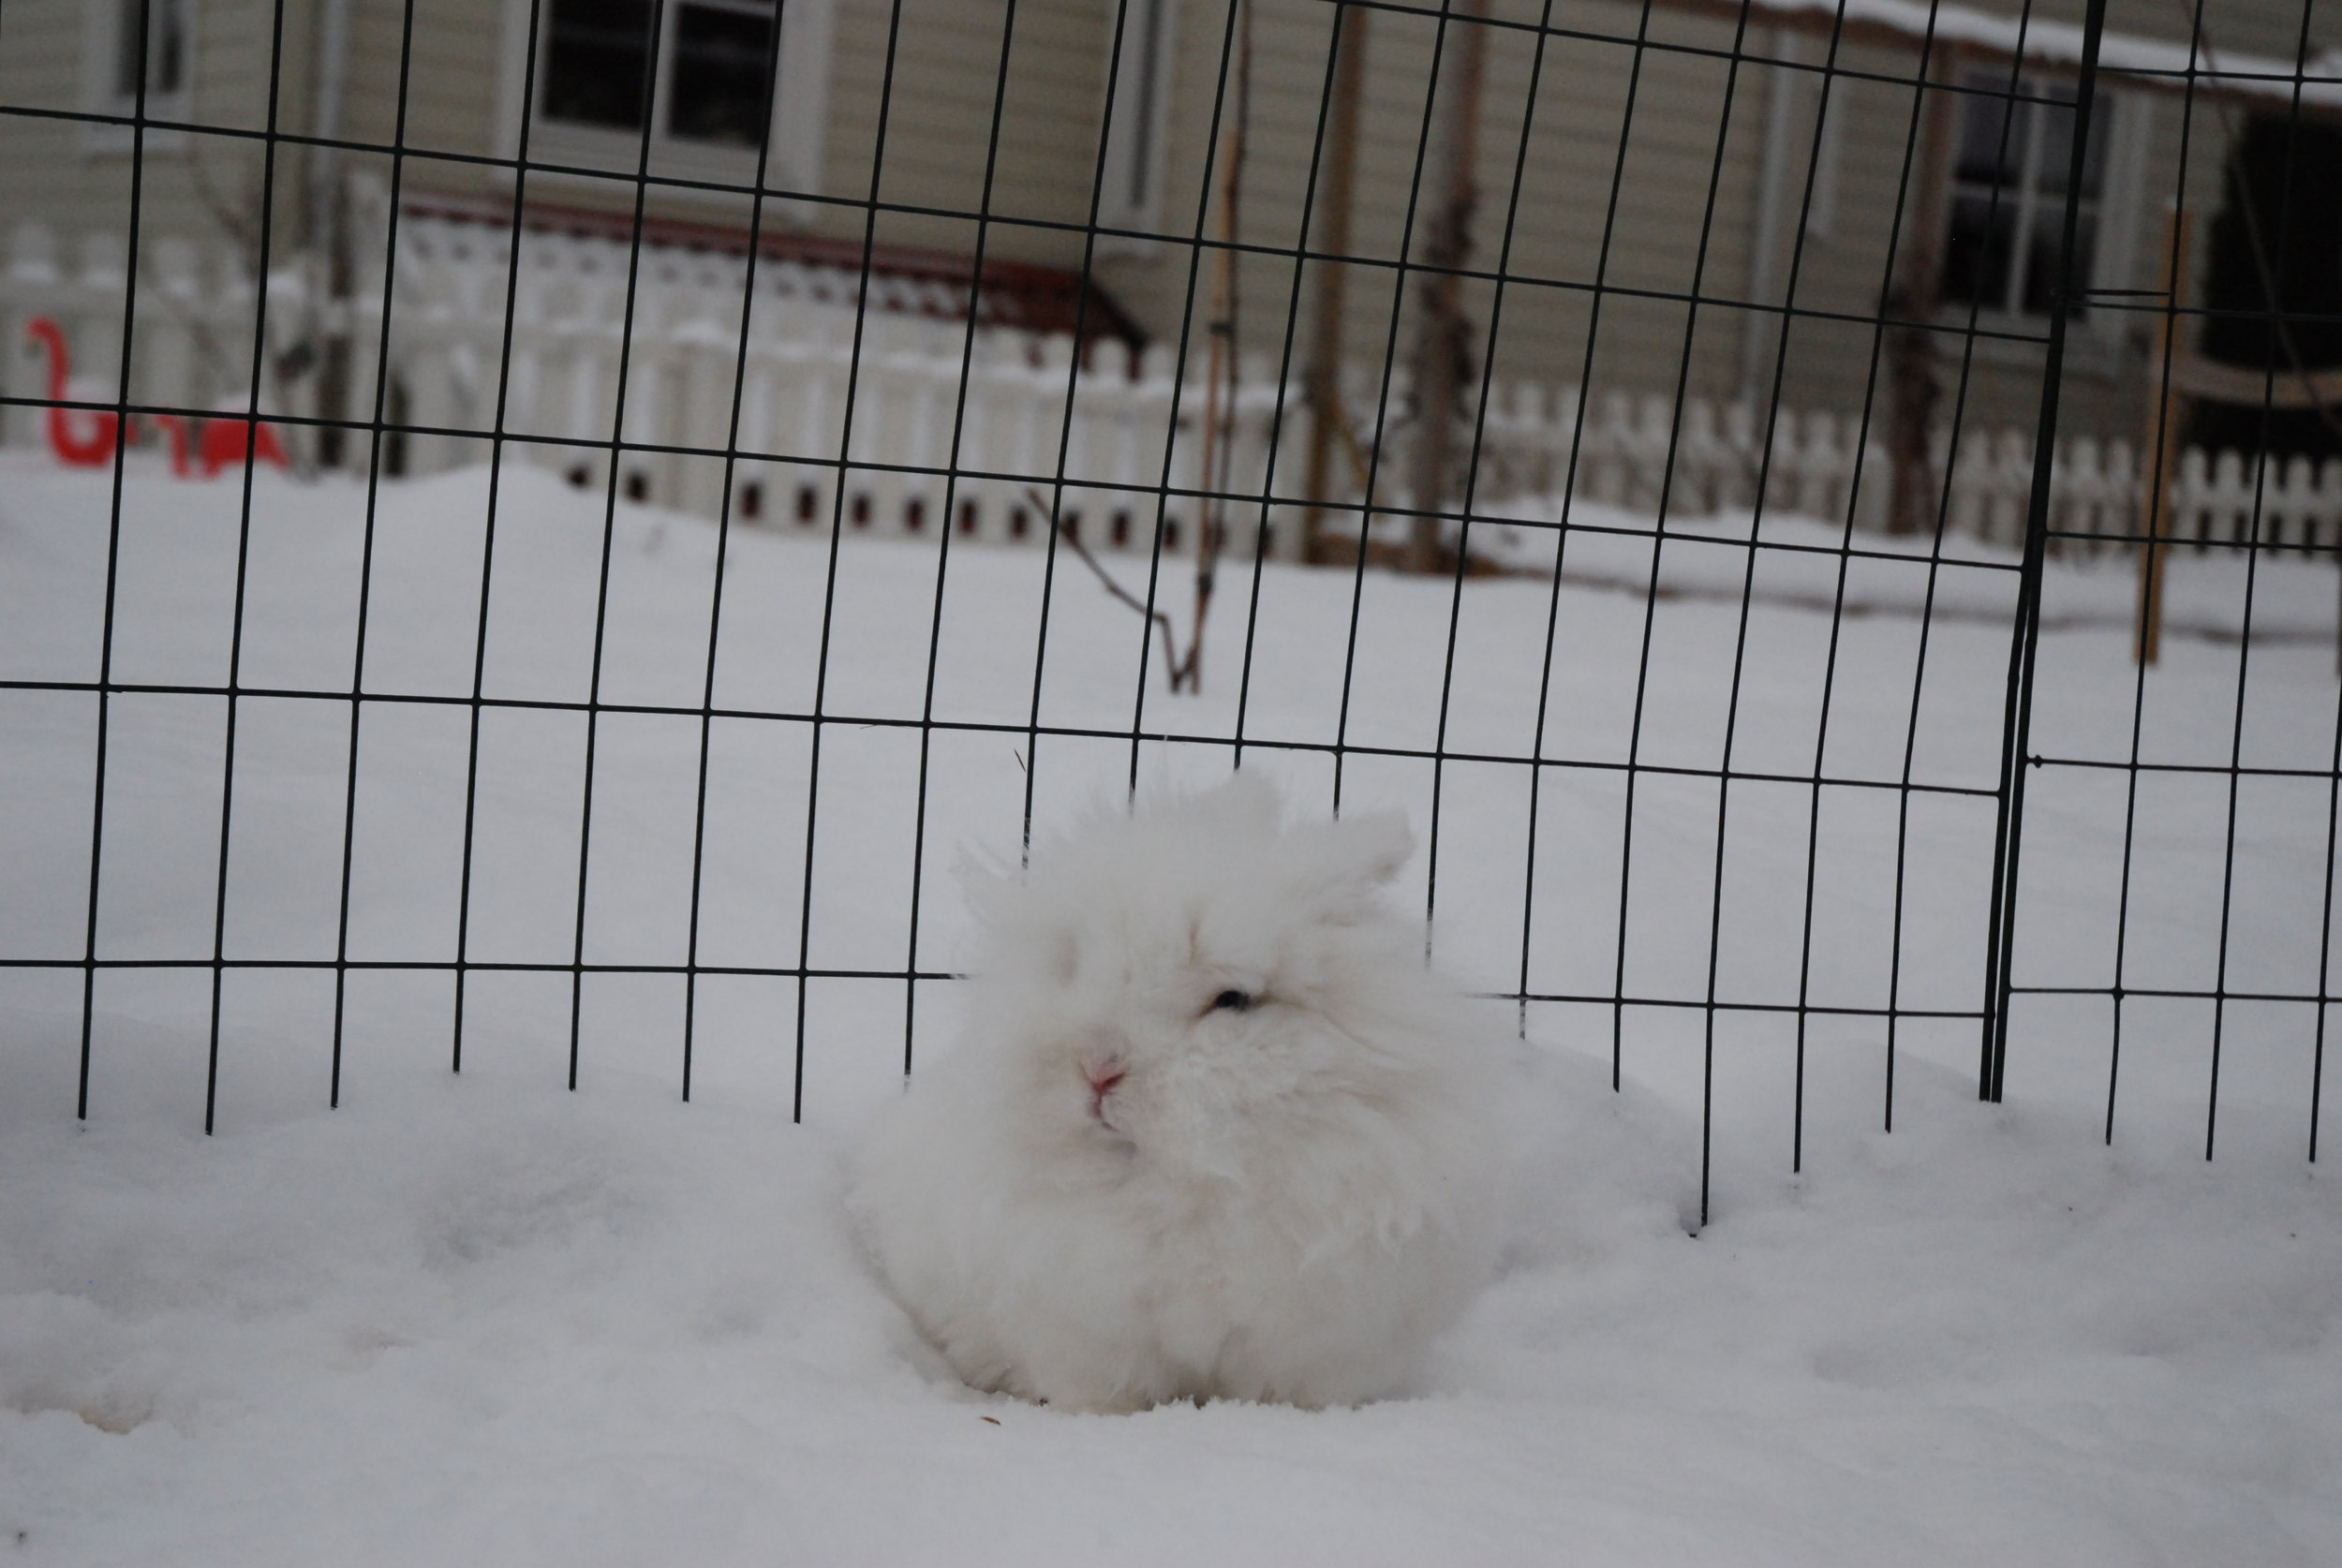 Where Does the Snow End and the Bunny Begin? 2